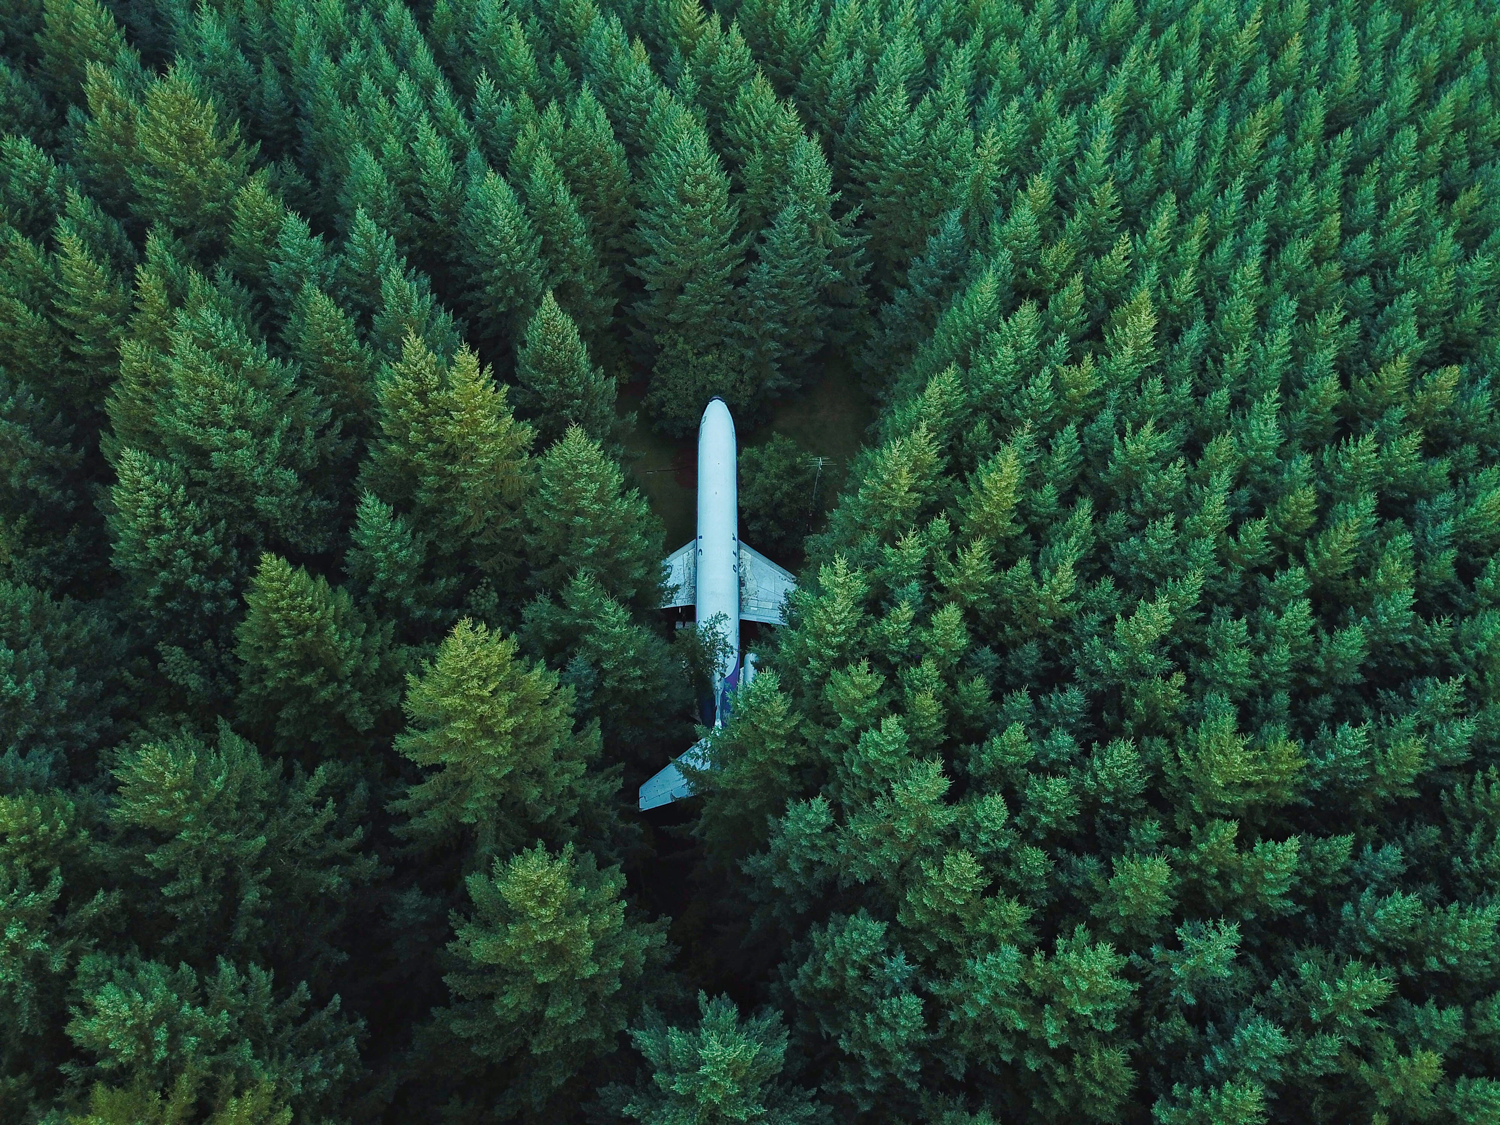 aerial-view-trees-drone-airplane-david-kovelenko-unsplash.png